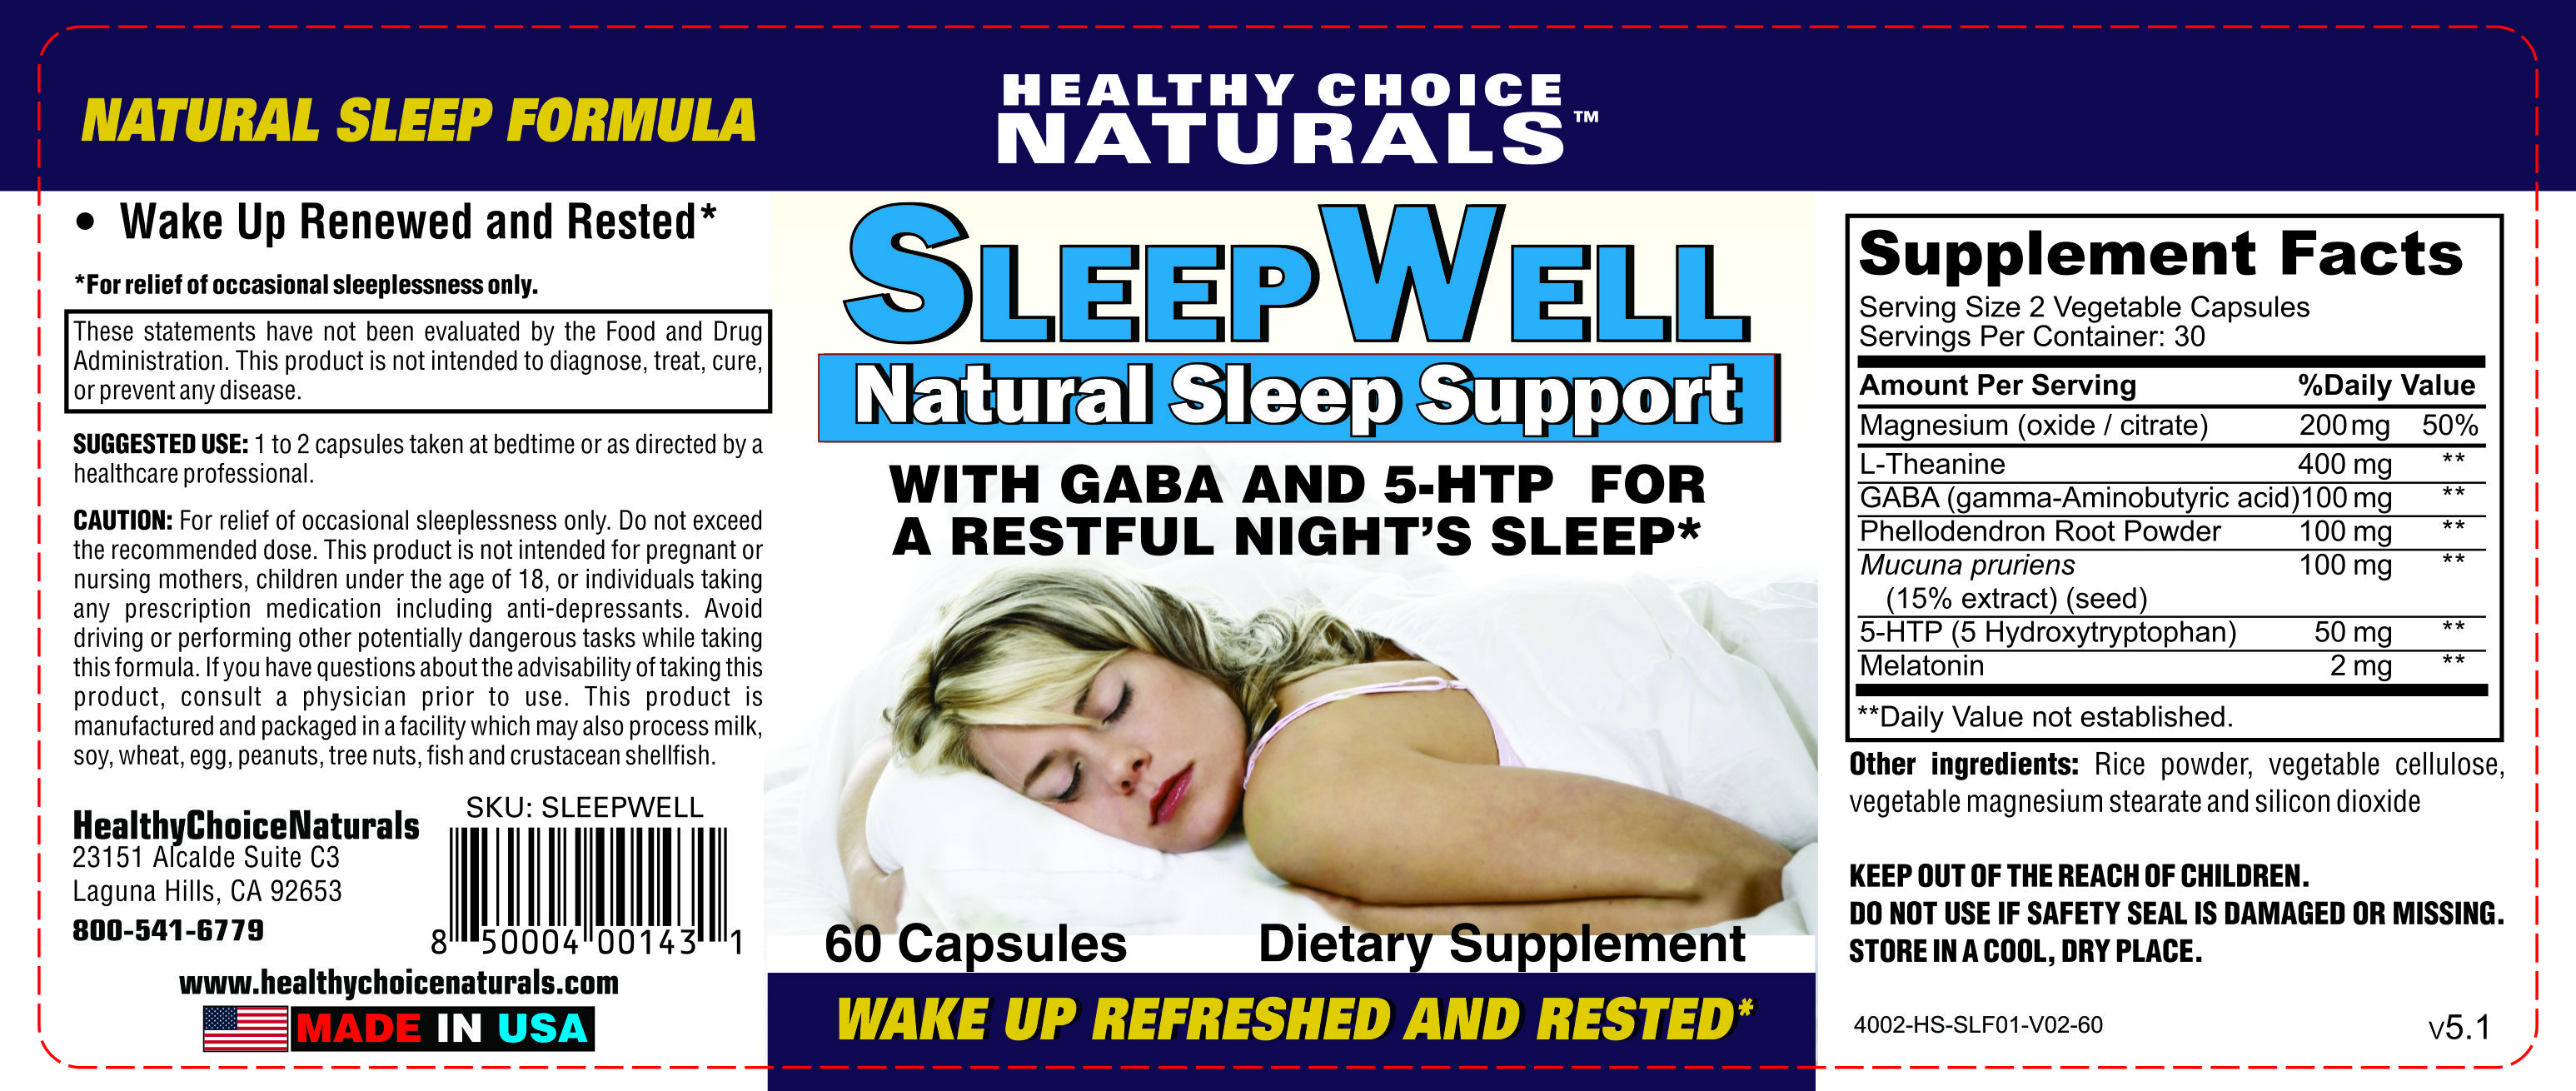 Sleepwell Natural Supplements